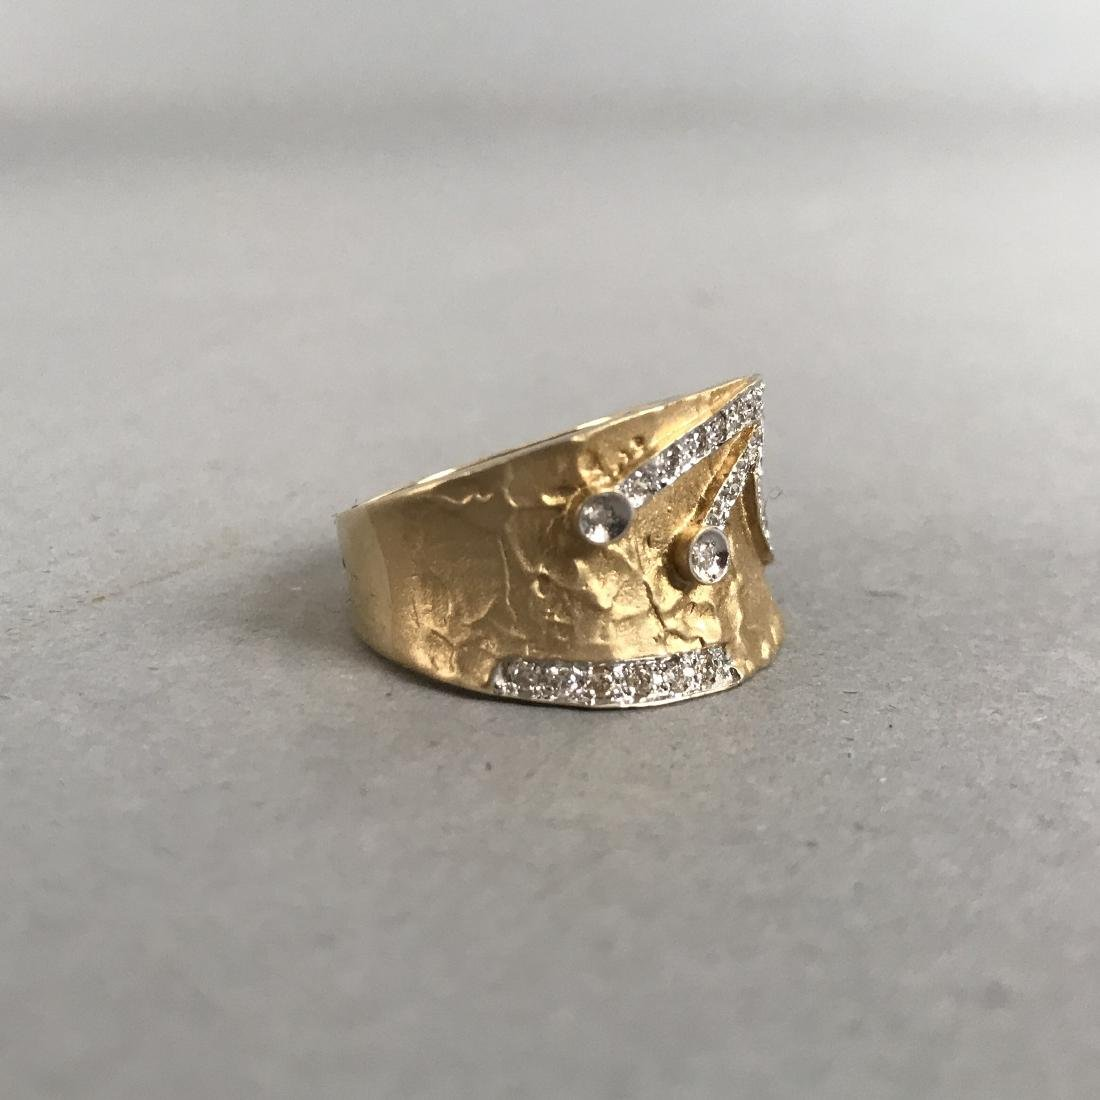 14K Gold Textured Ring with Diamond Design - 4